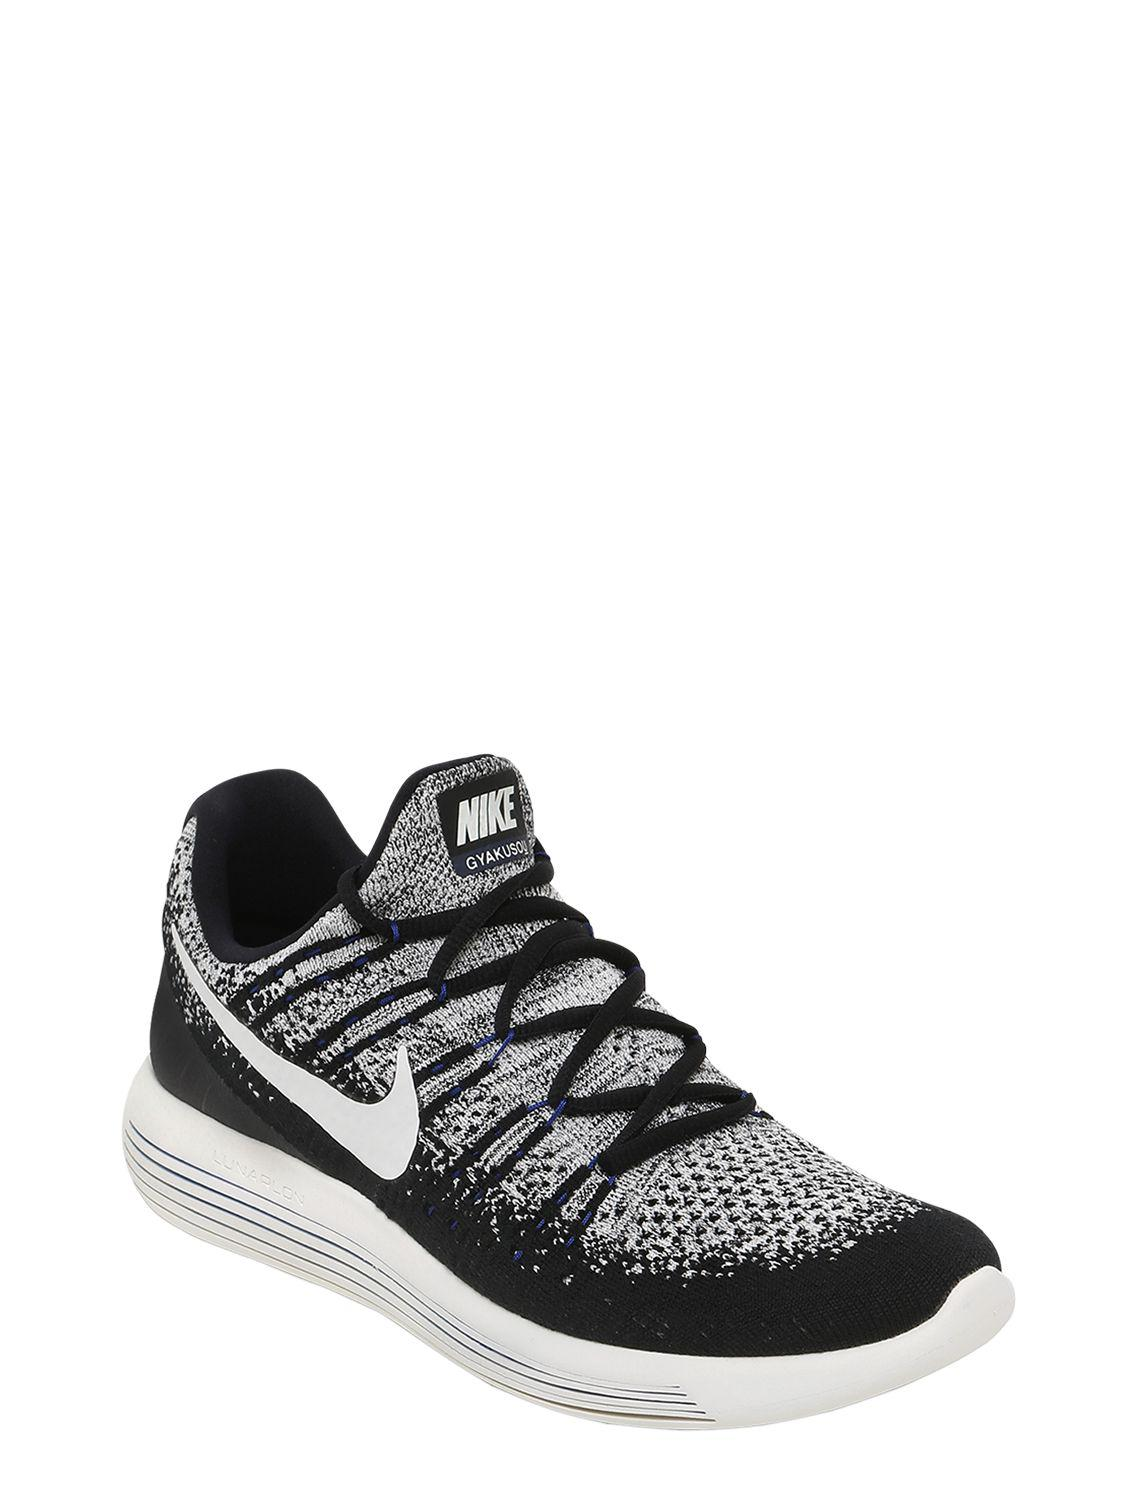 2ea484acbbff Lyst - Nike Nikelab Lunarepic Flyknit 2 Sneakers in Black for Men